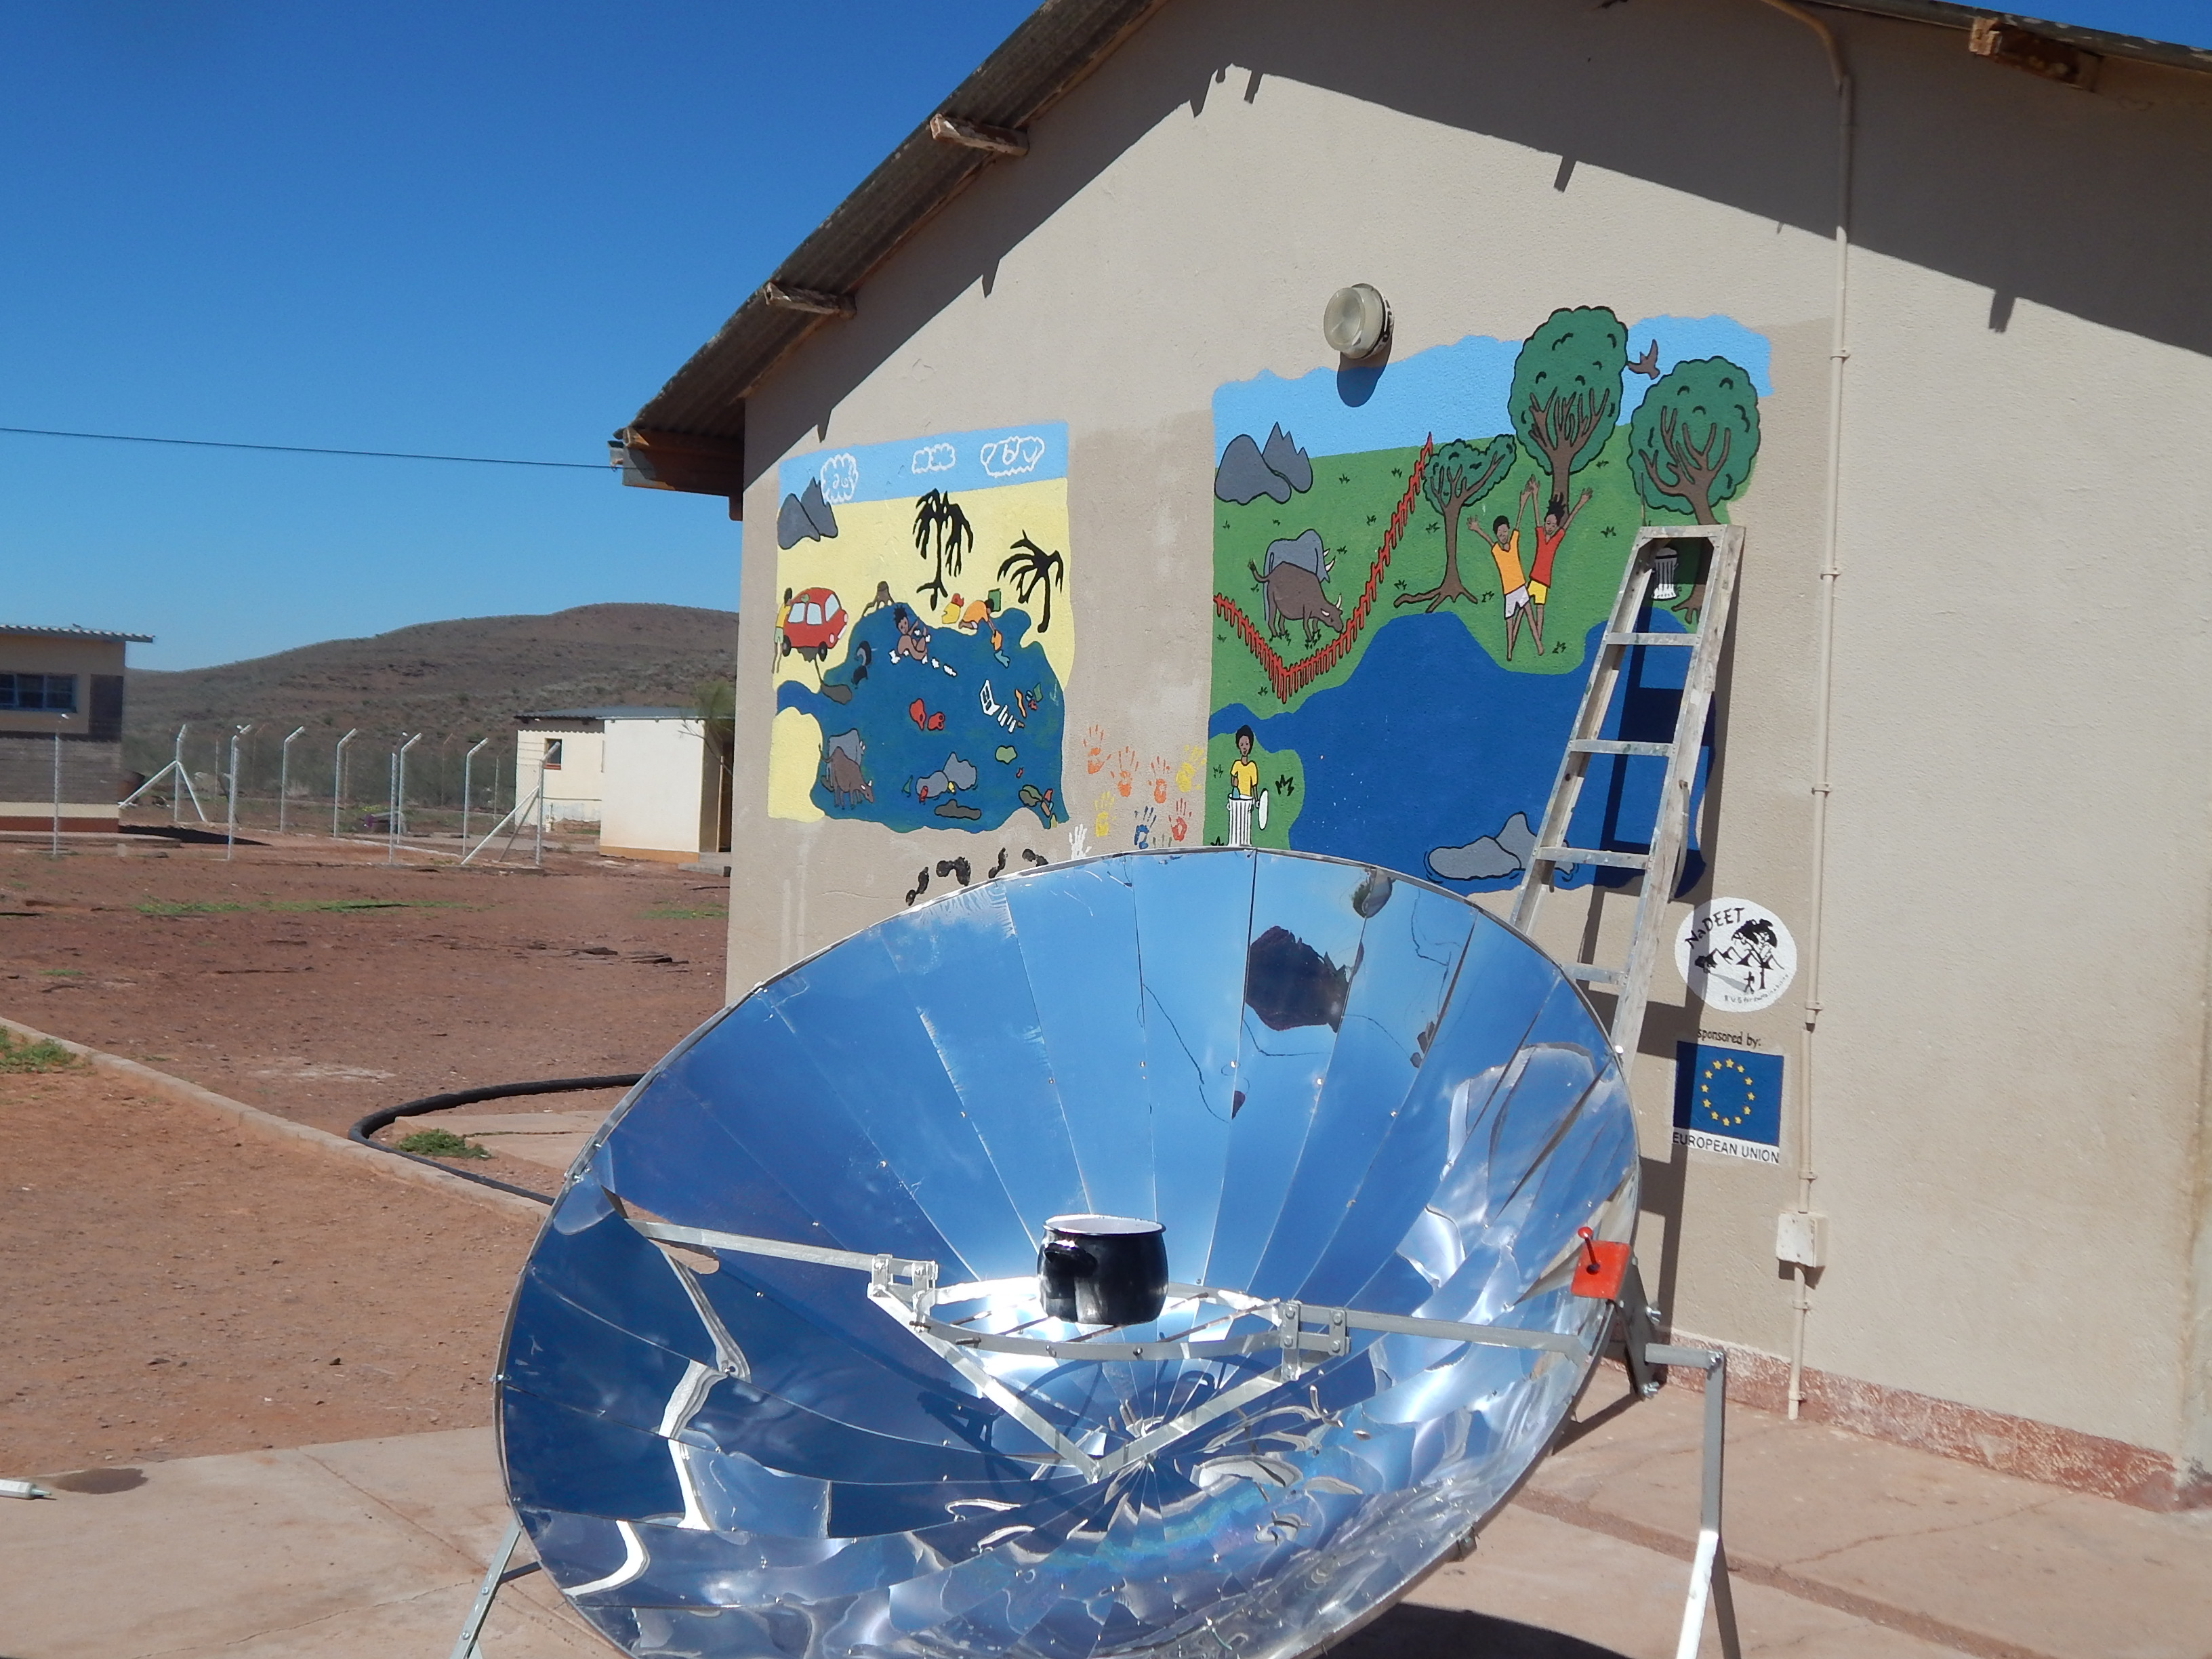 Solar cooking and water awreness mural at Edward Frederick PS